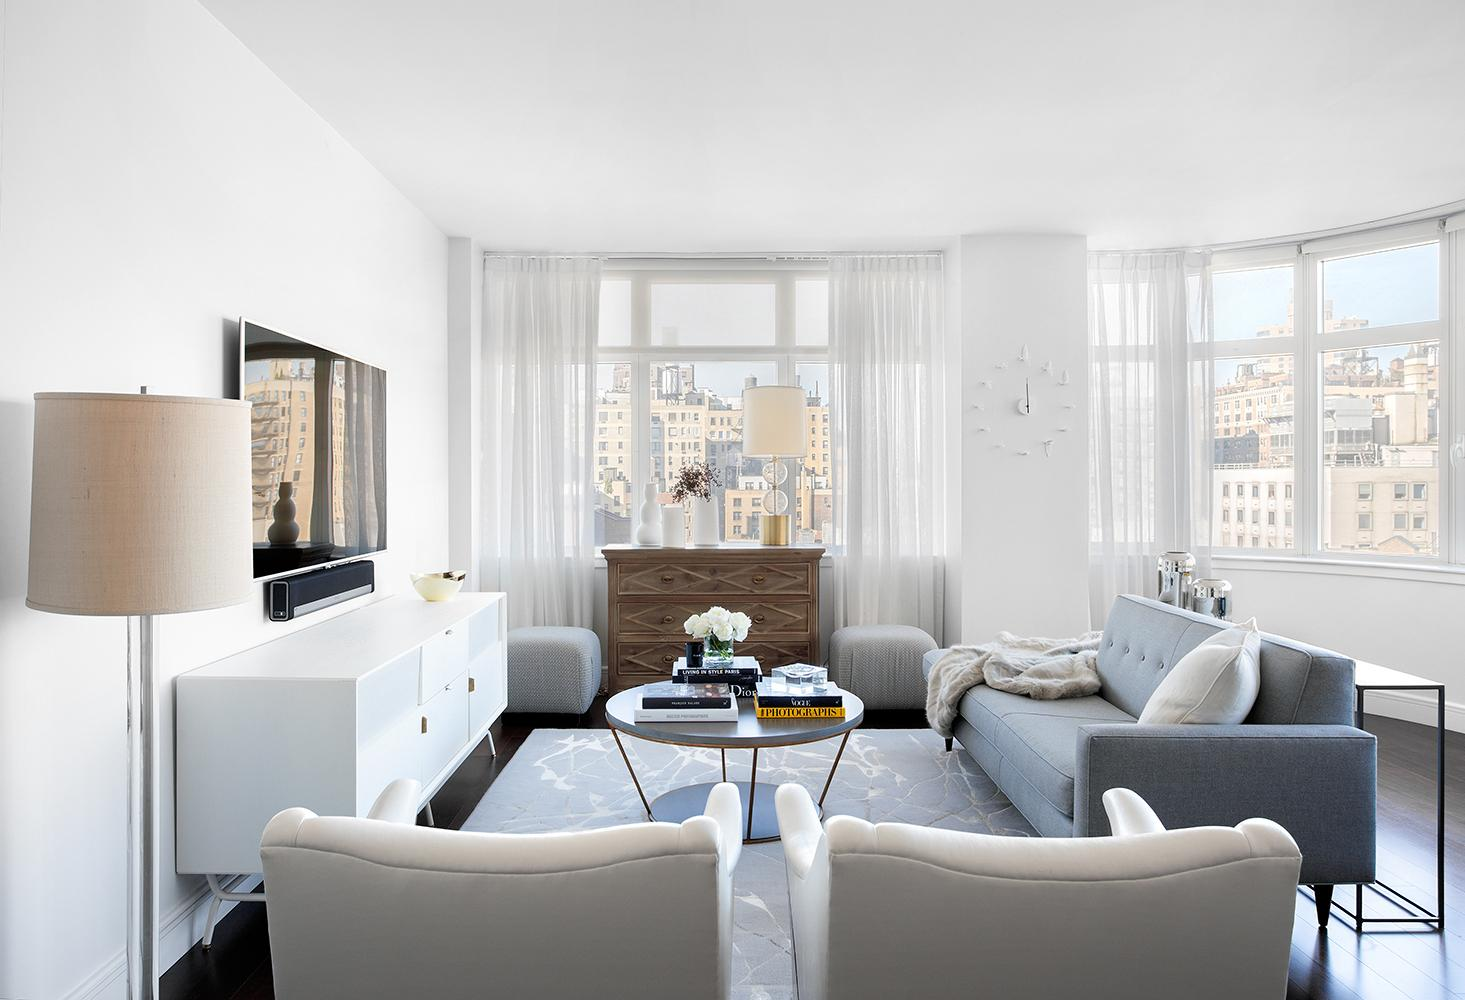 How to find the right interior designer for your space